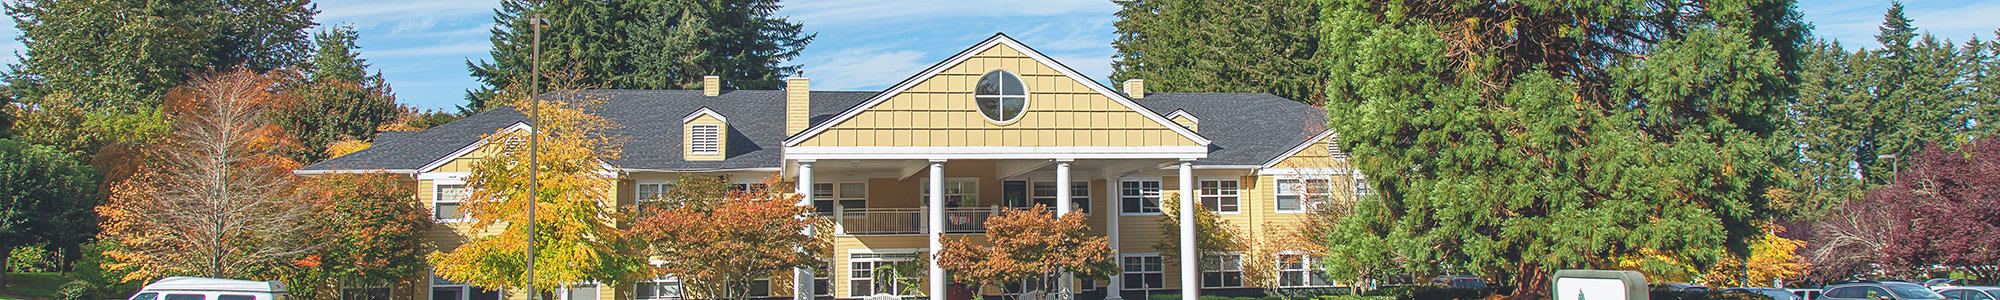 Careers at senior living in Olympia